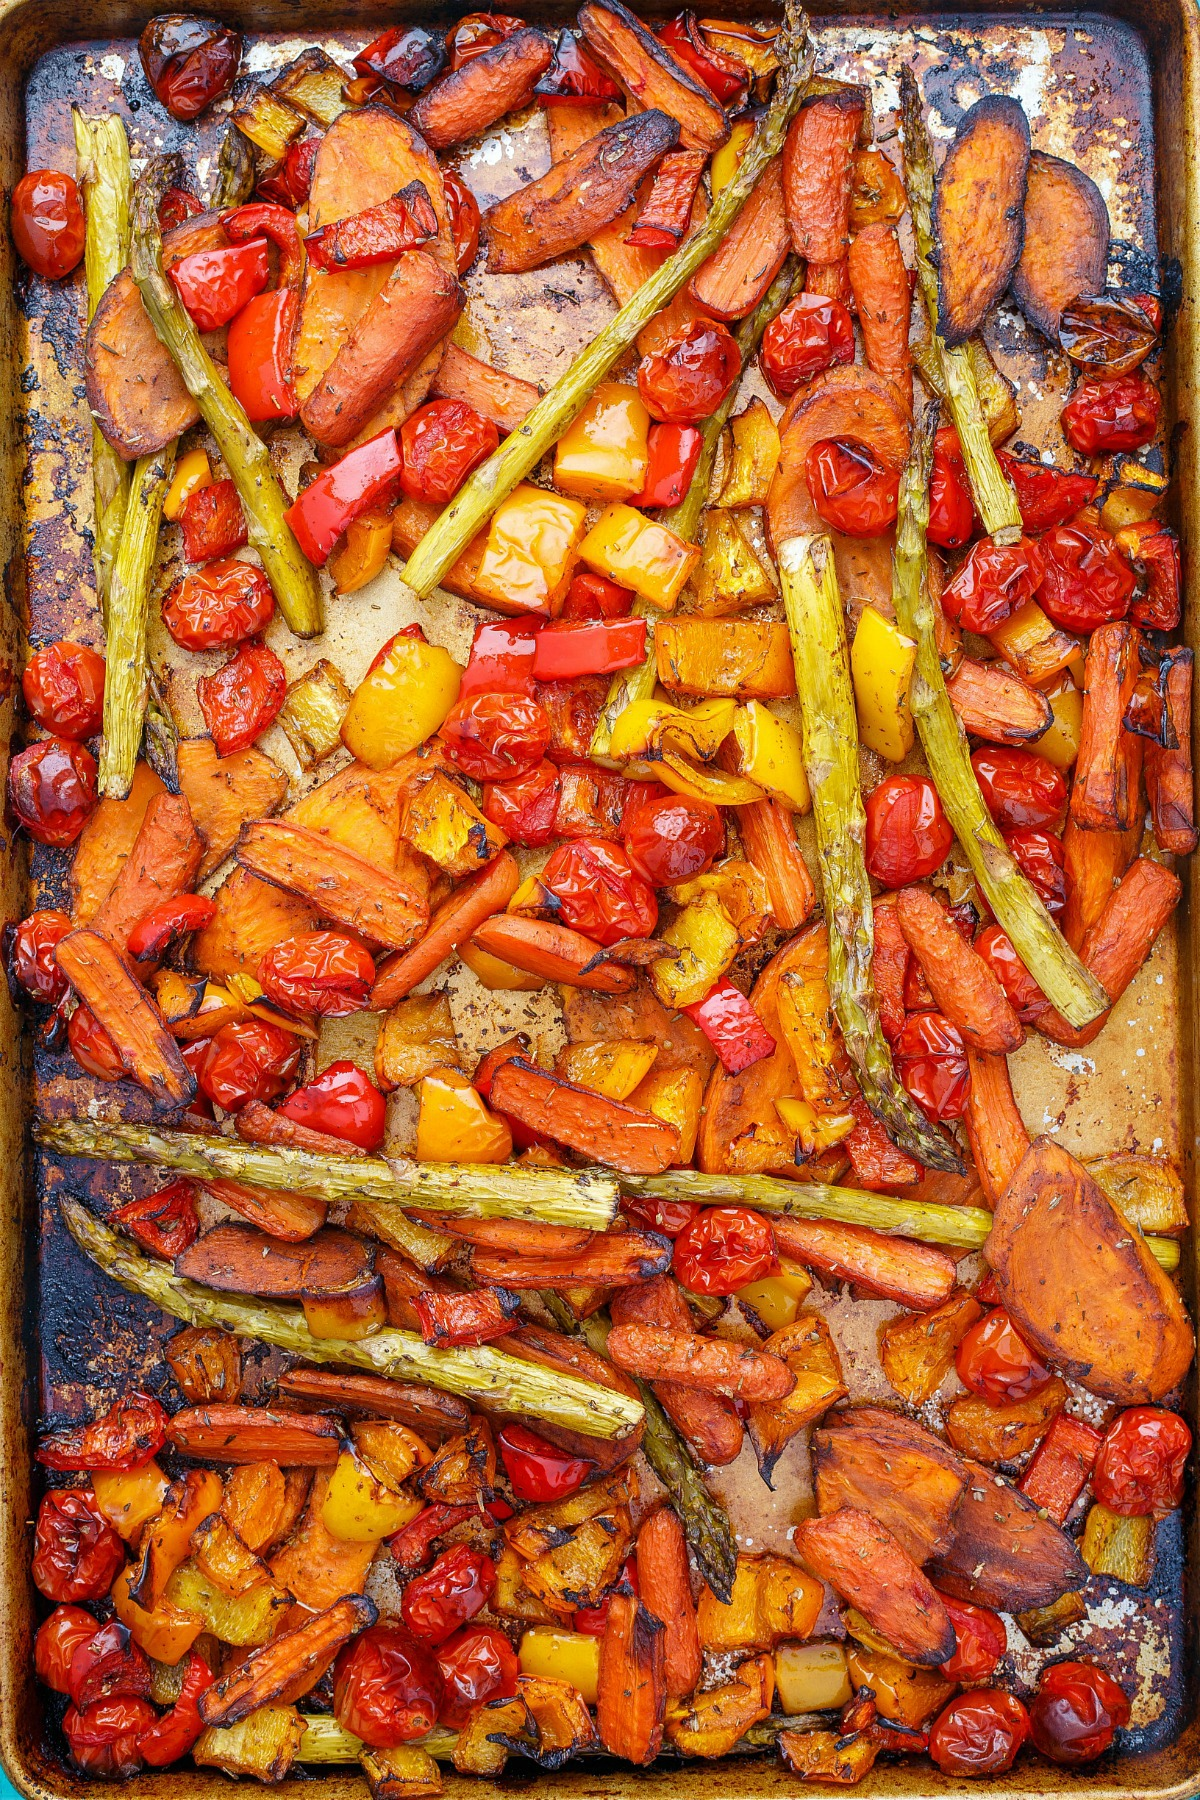 You are going to love these balsamic roasted vegetables. Toss your favorites like sweet potatoes, carrots, and asparagus in a bright, flavorful dressing, then bake!